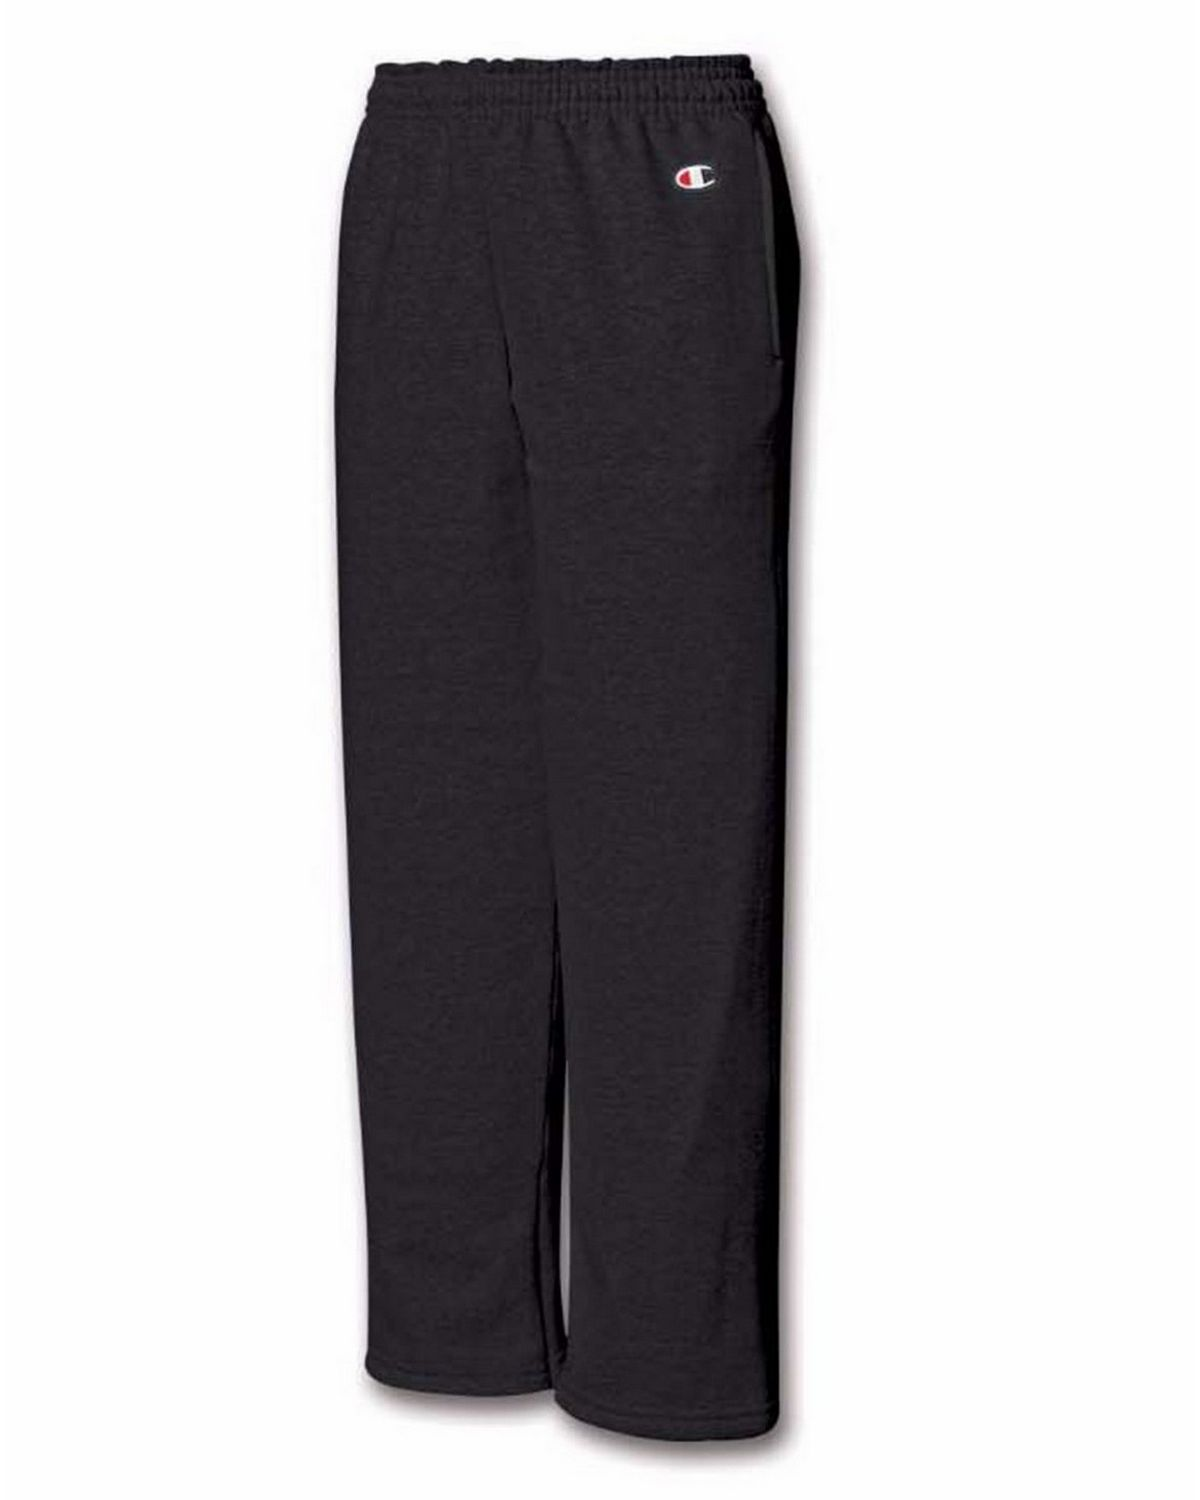 Champion P890 Youth Fleece Open Bottom Pant - Black - M P890